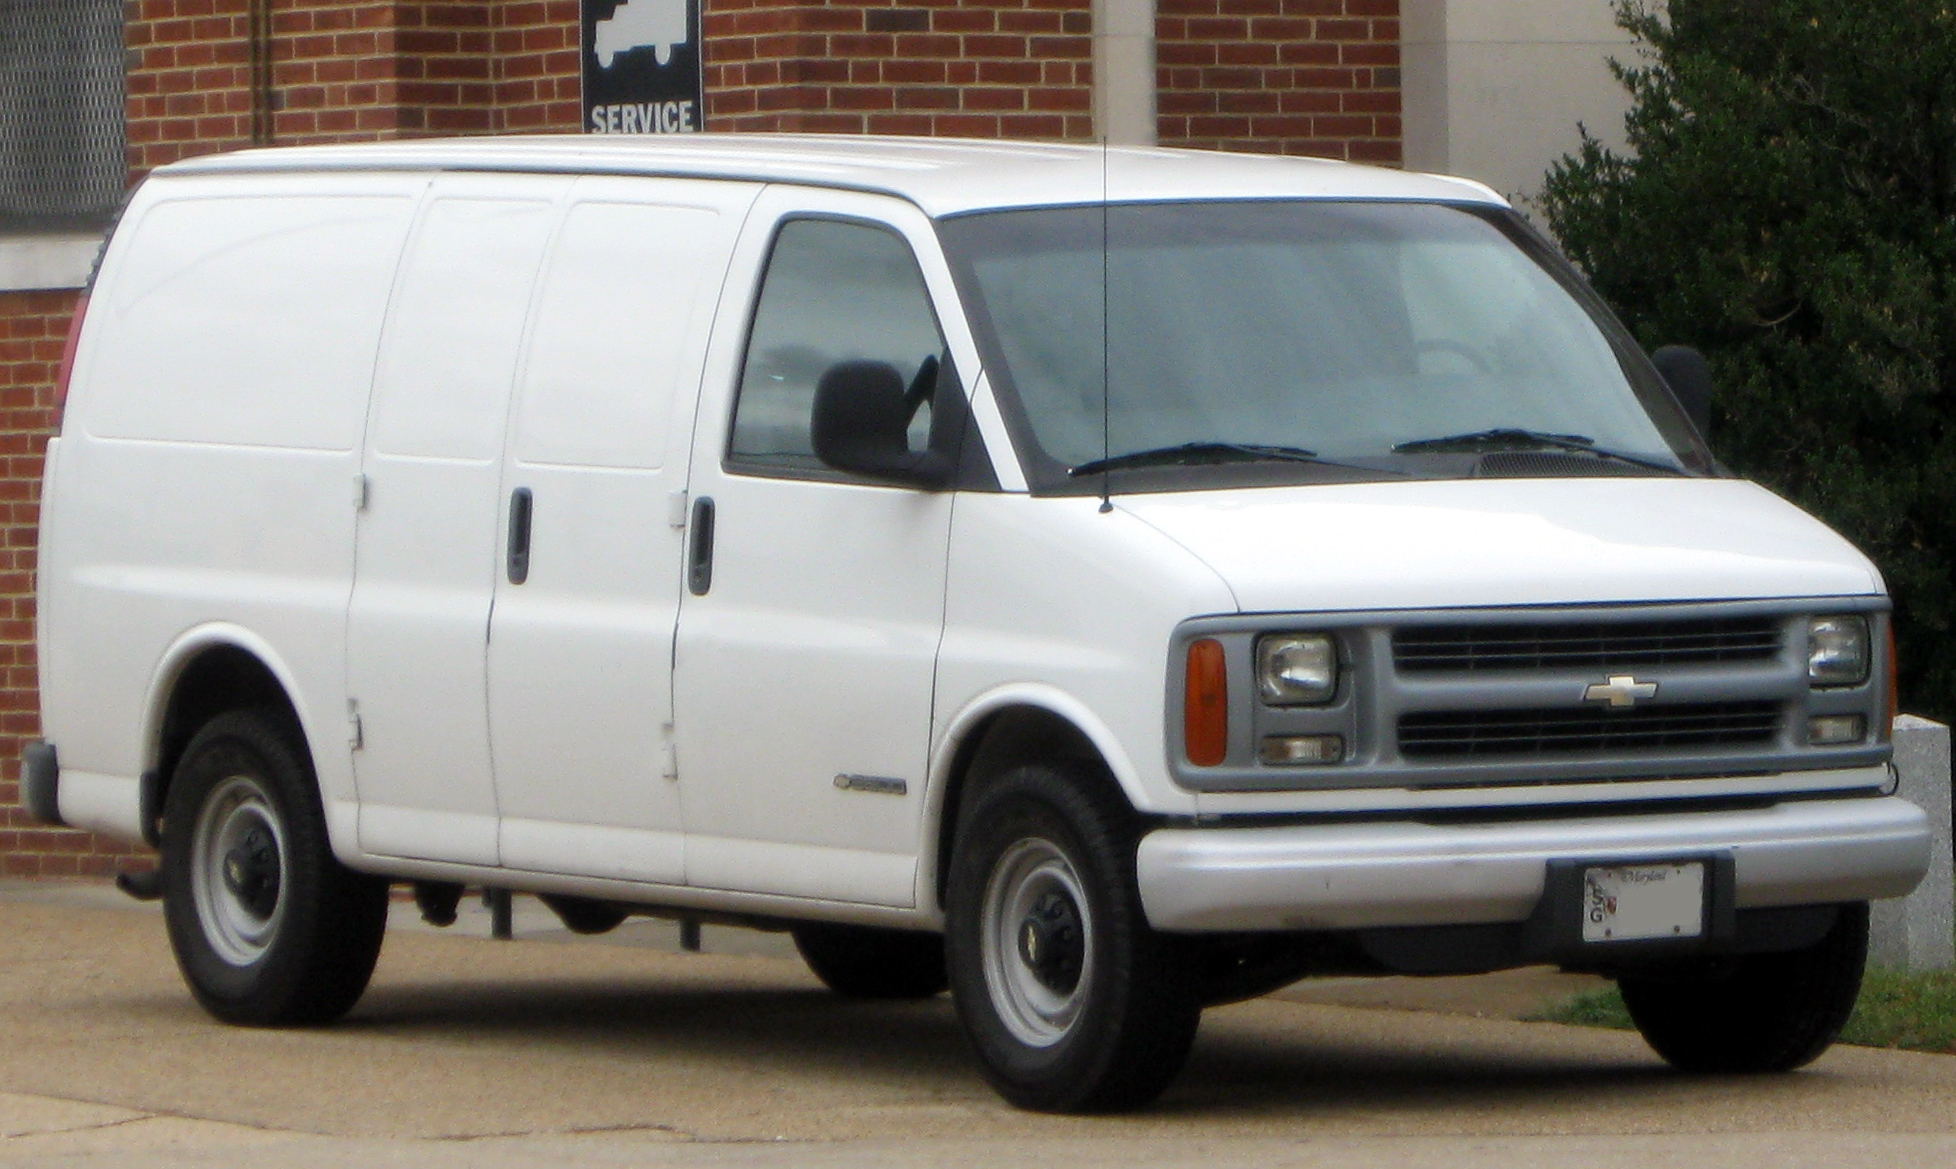 2001 chevy express wiring diagram, 2001 chevy express wiring diagram #4 moreover 2001 chevy express wiring diagram #4